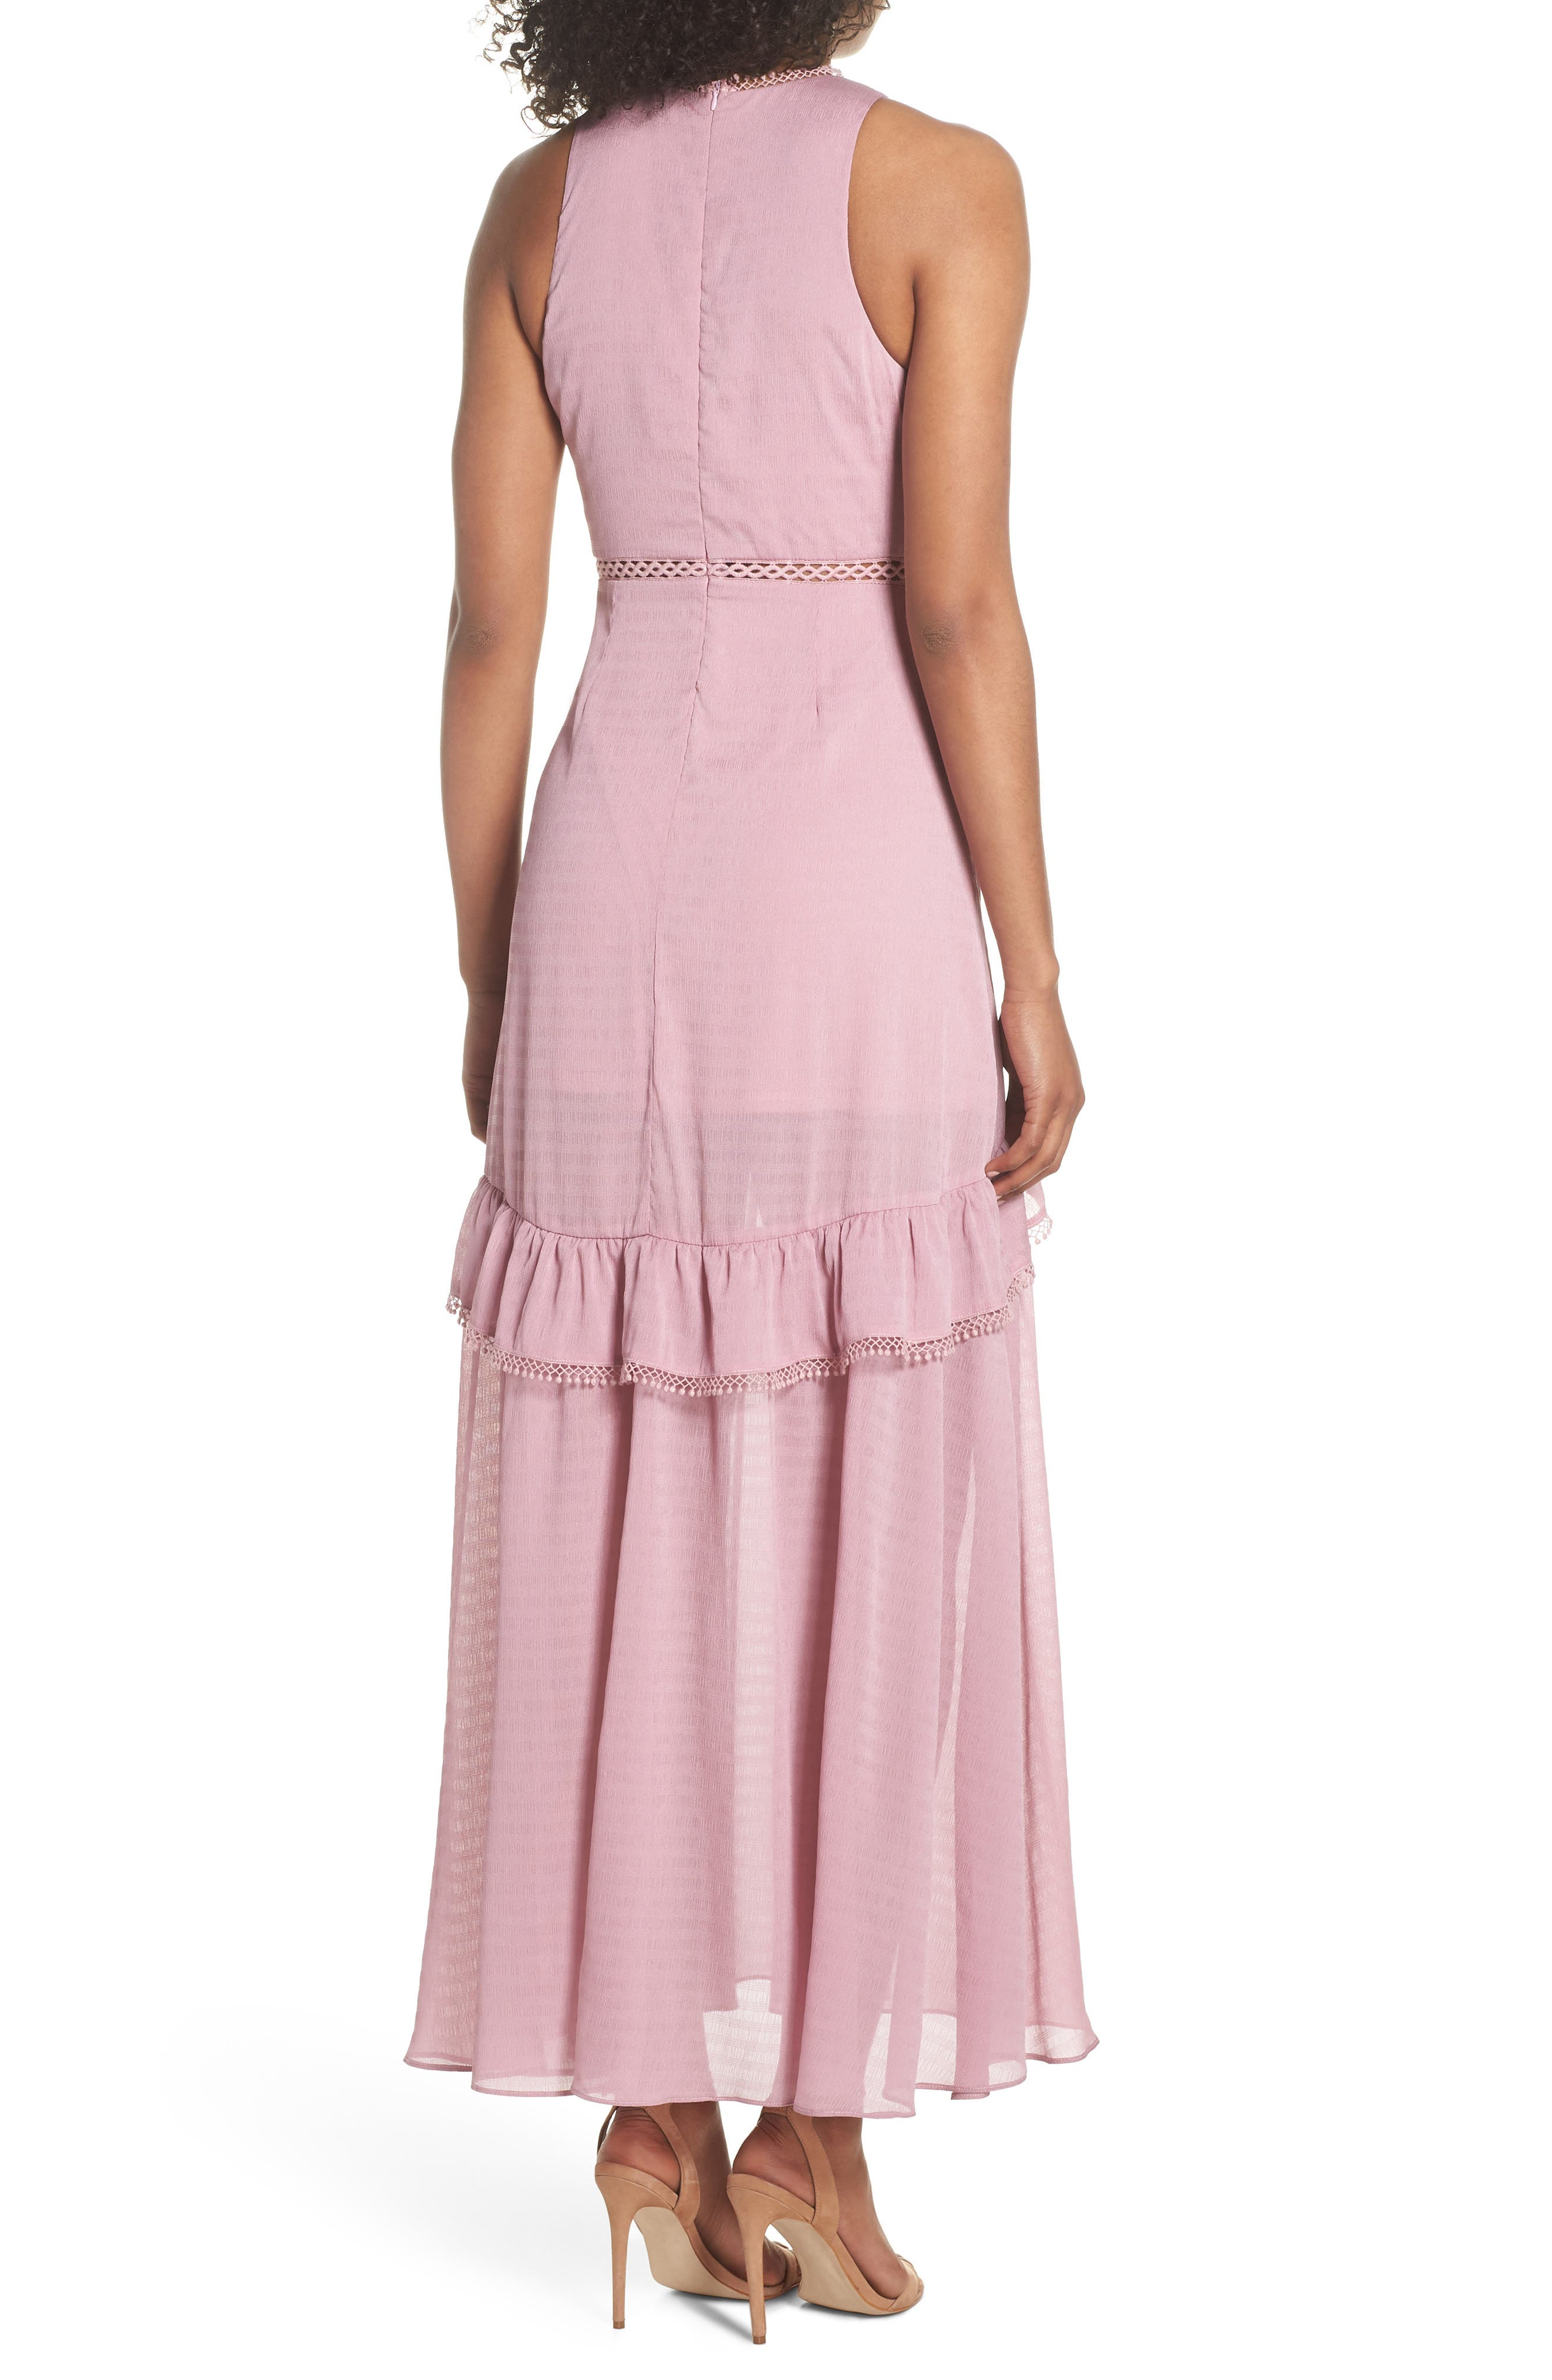 Sleeveless Ruffle Maxi Dress,                             Alternate thumbnail 2, color,                             525